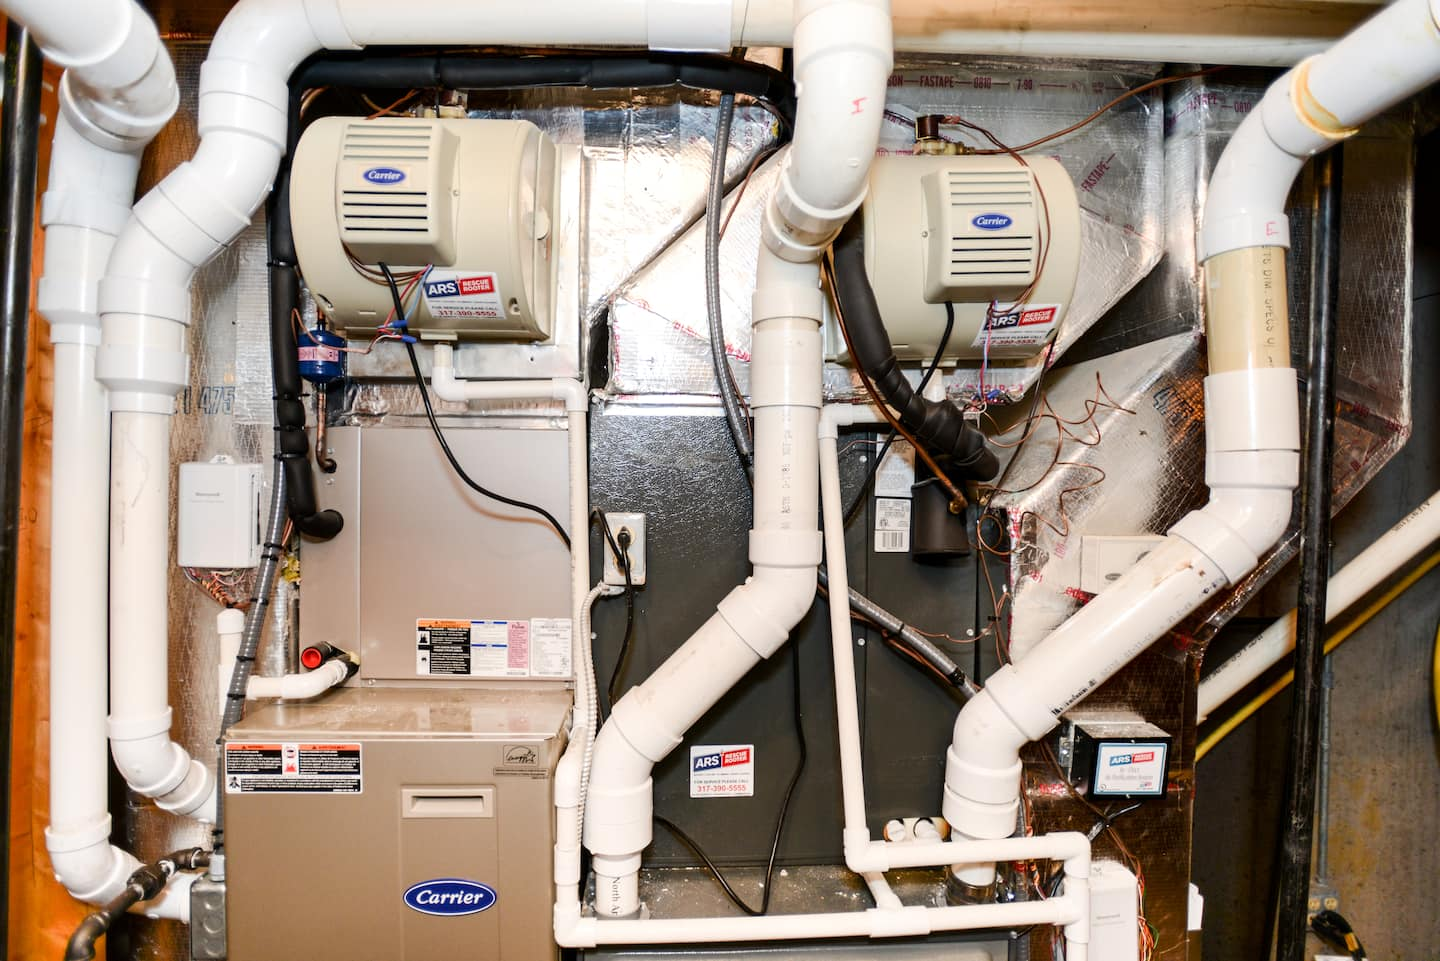 How Much Does it Cost to Install a New Furnace? | Angie's List Lennox Mobile Home Furnace on mobile home wiring, mobile home button, mobile home financing, mobile home crane, mobile home filters, mobile home stereo, mobile home hvac, mobile home lights, mobile home concrete, mobile home water softener, mobile home humidifier, mobile home doors, mobile home condenser, mobile home sump pump, mobile home pipes, mobile home shingles, mobile home flue, mobile home flame, mobile home vents, mobile home dehumidifier,